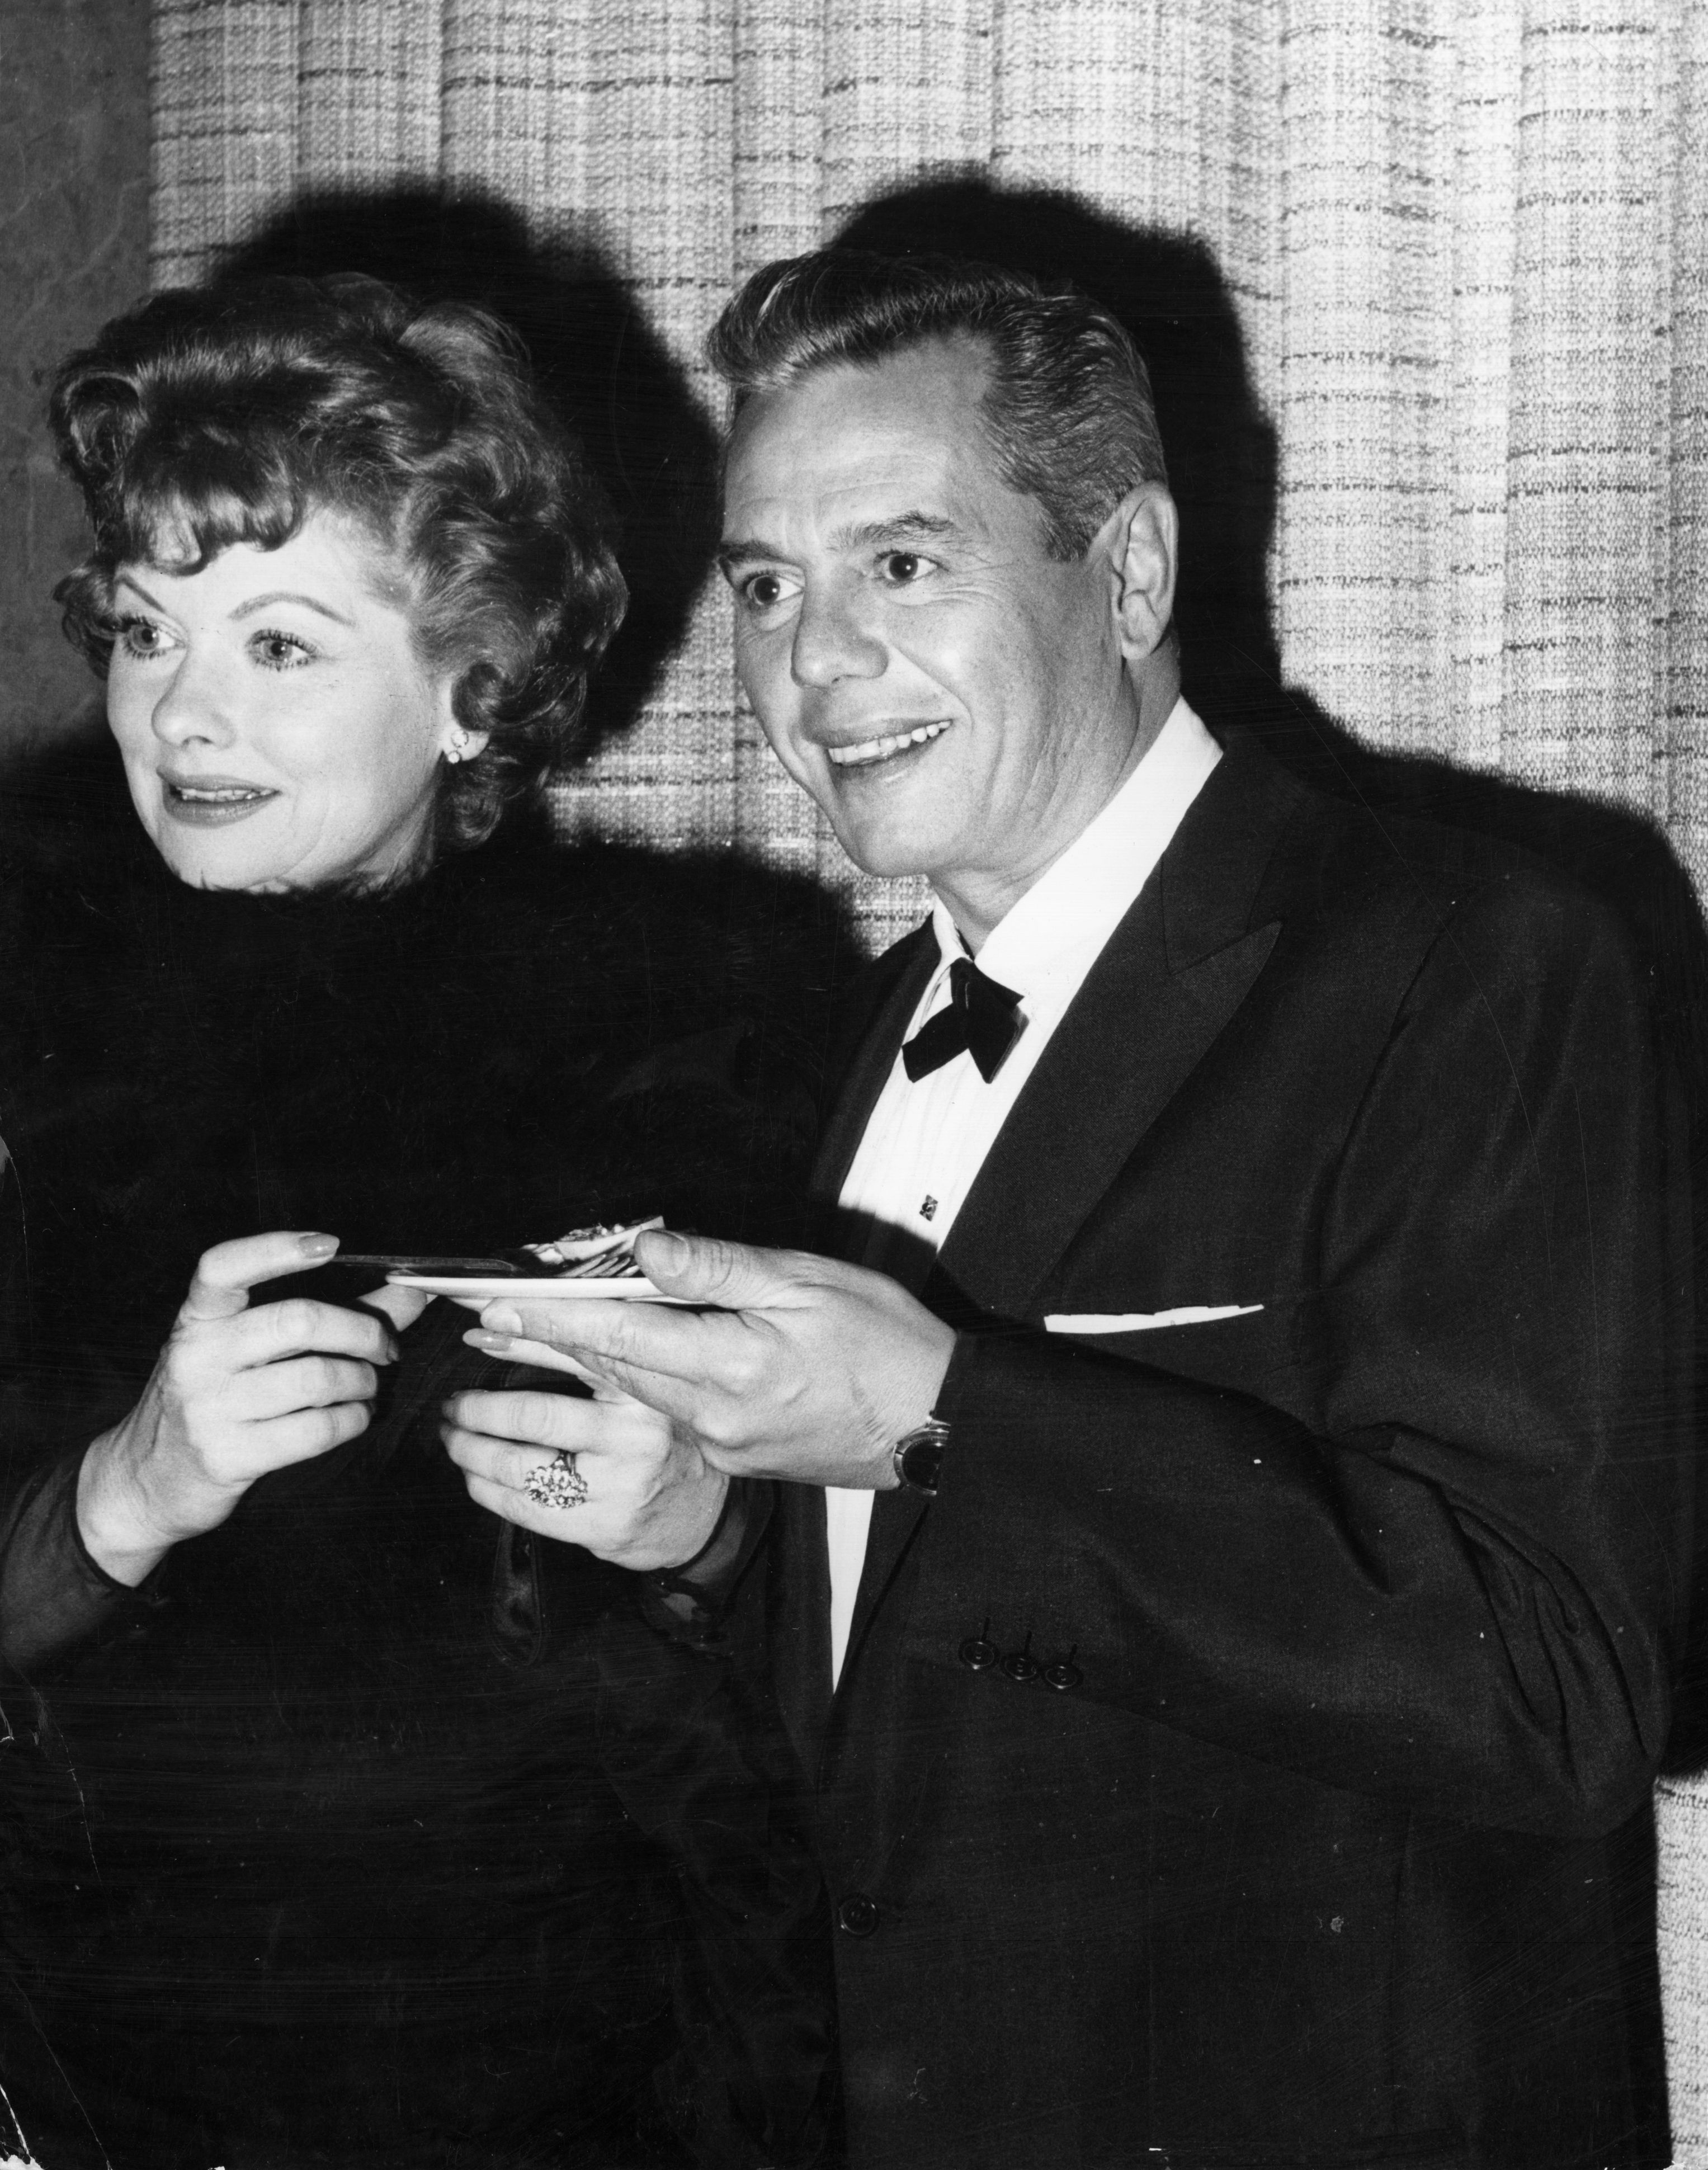 American actress Lucille Ball (1911 - 1989) with her Cuban husband and co-star of the popular TV show 'I Love Lucy', Desi Arnaz (1917 - 1986). The celebrity couple set up the Desilu Studios together.